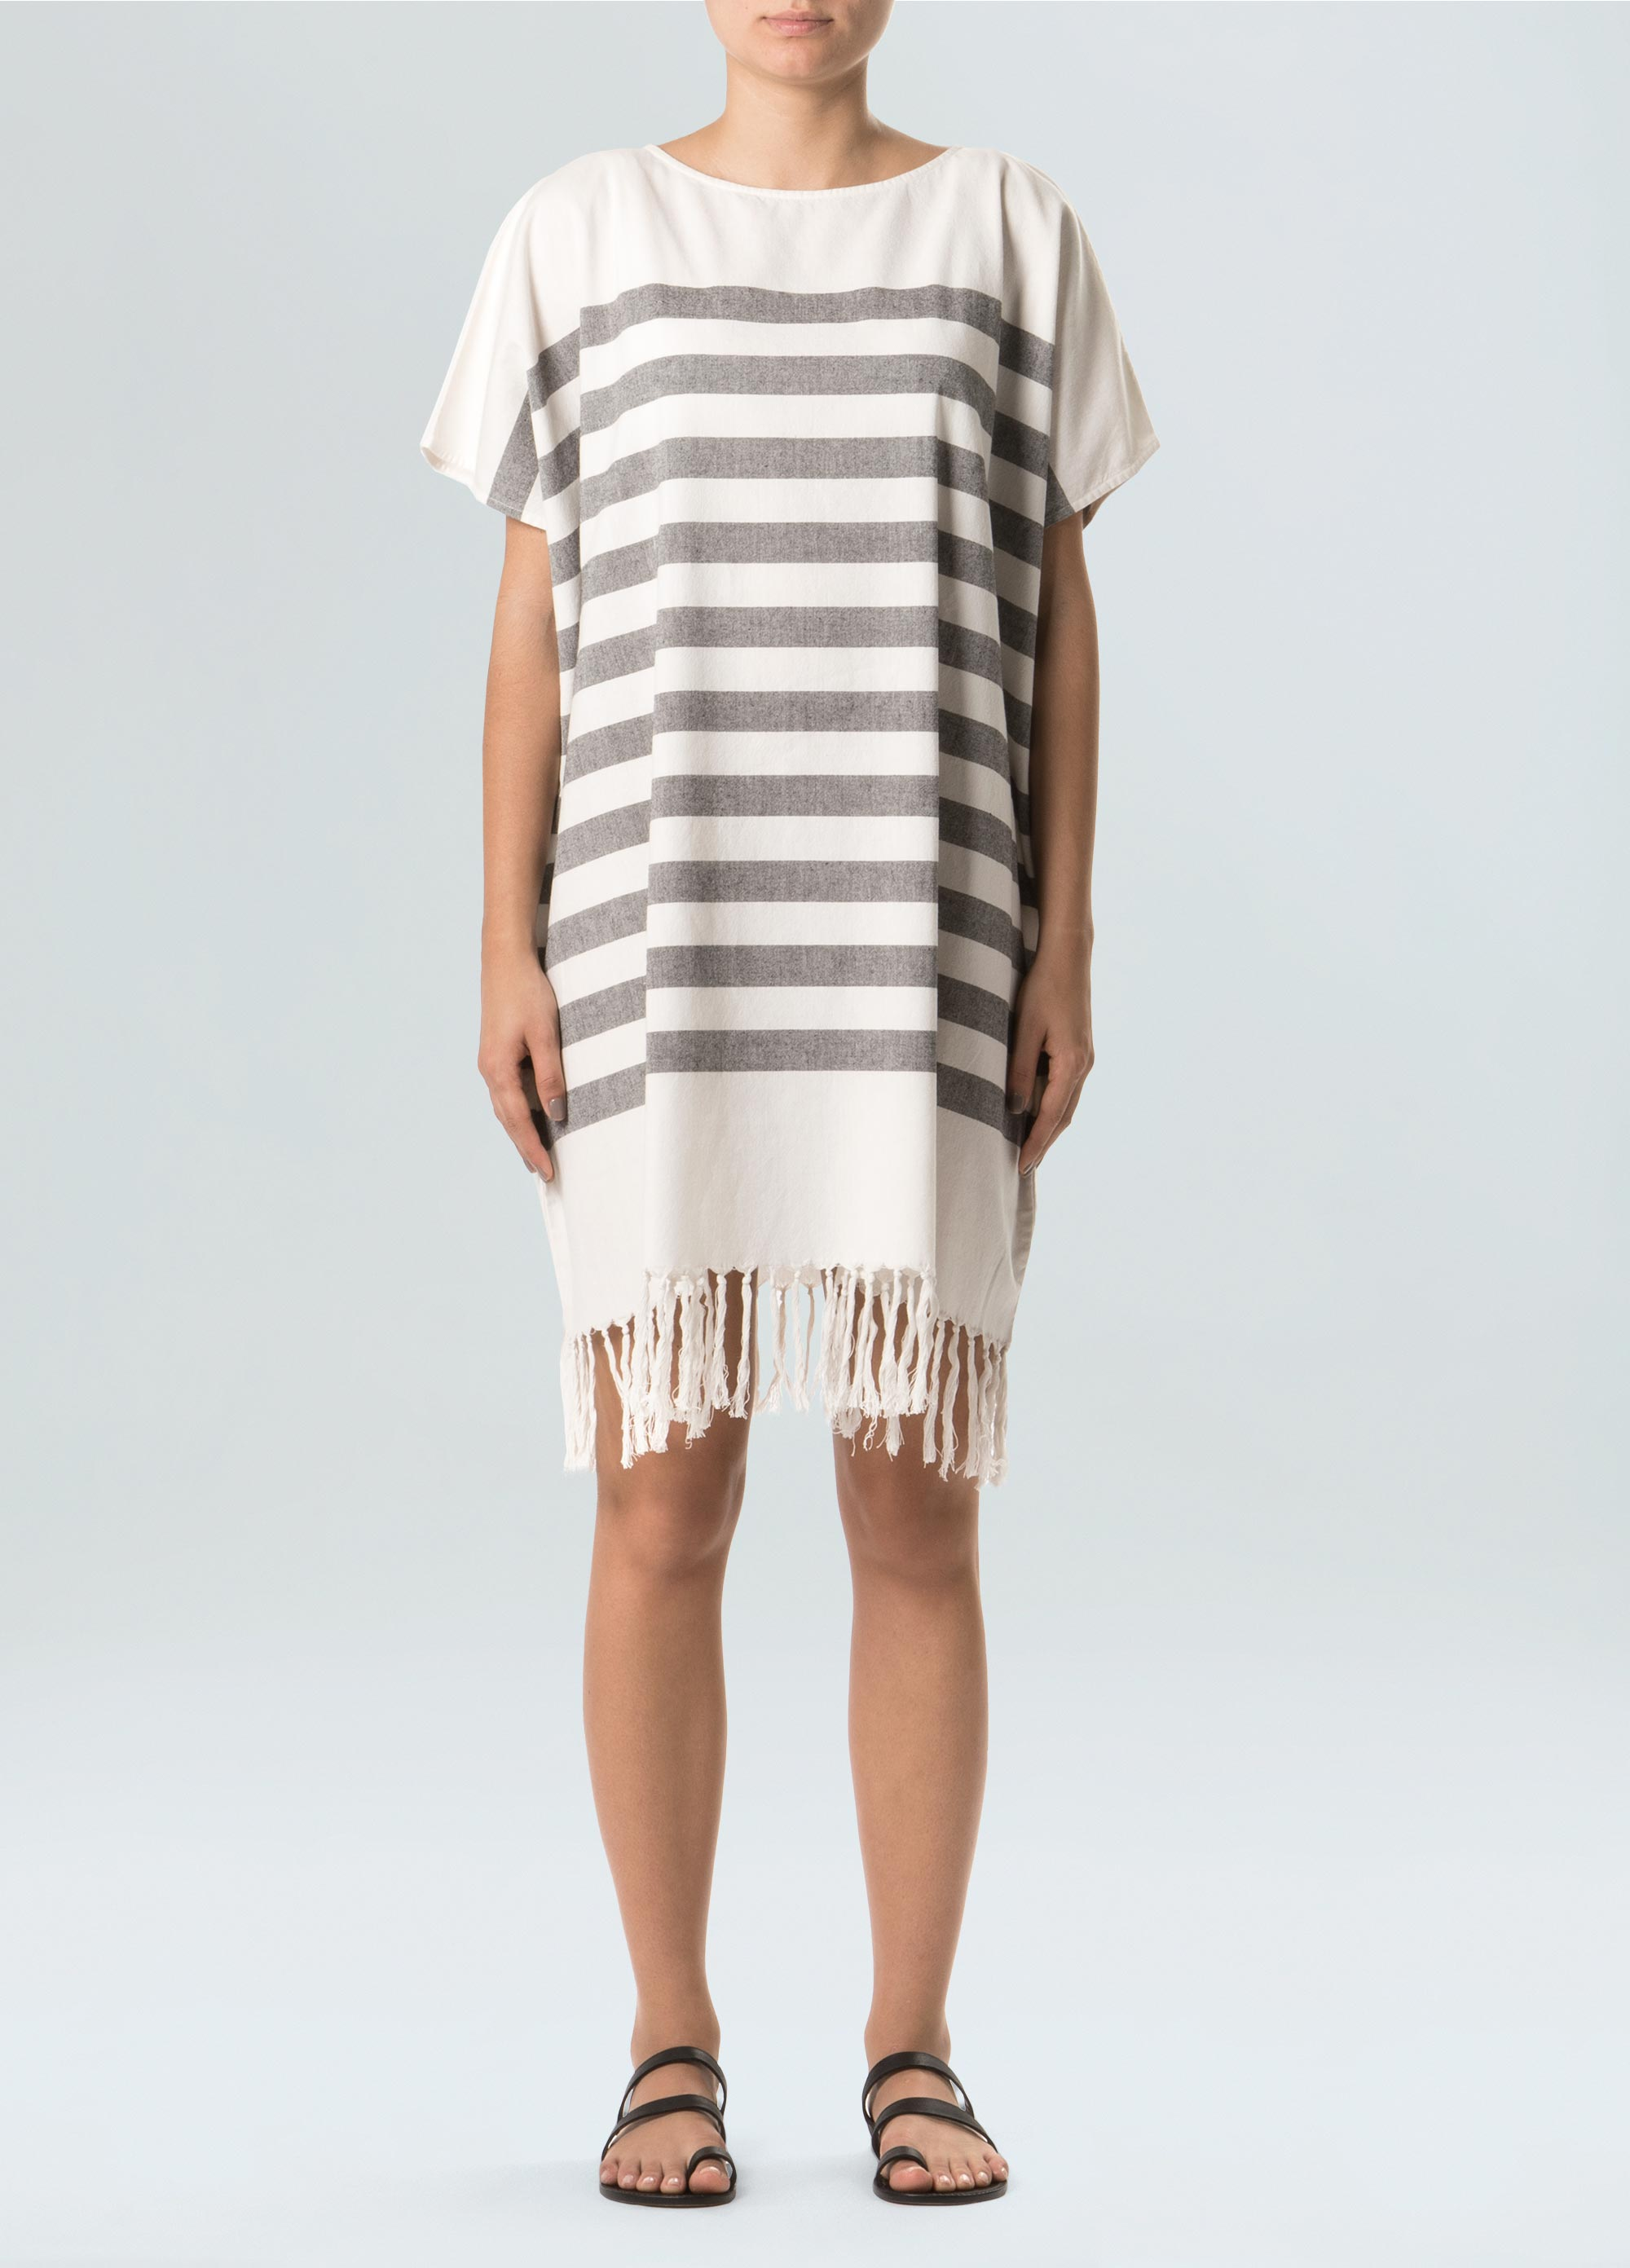 Women's Basic Stripes Beach Dress